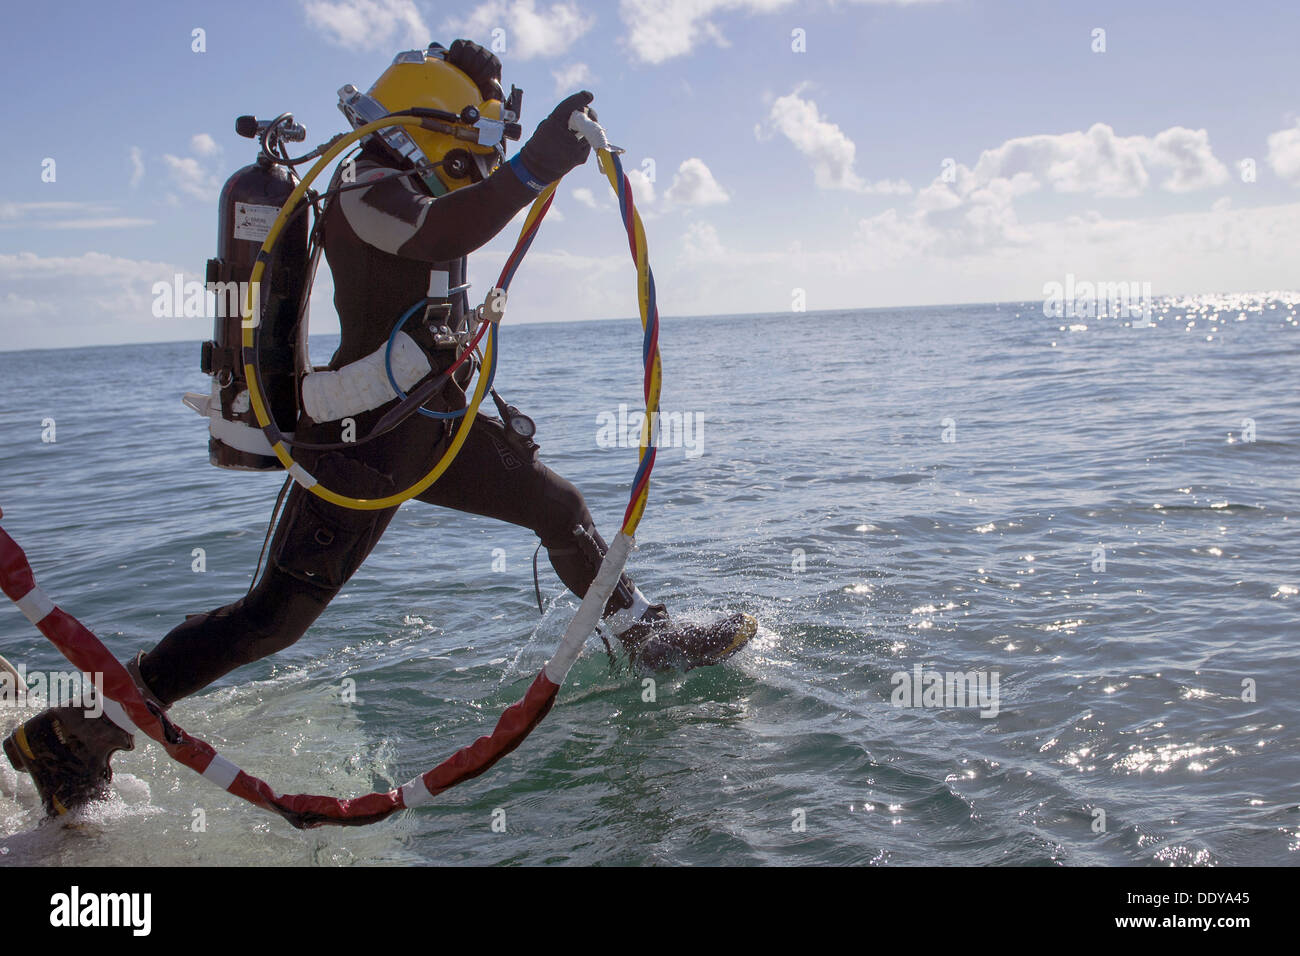 A US Navy technical diver performs a front step-in water entry during dive training operations January 16, 2013 in Key West, FL. - Stock Image